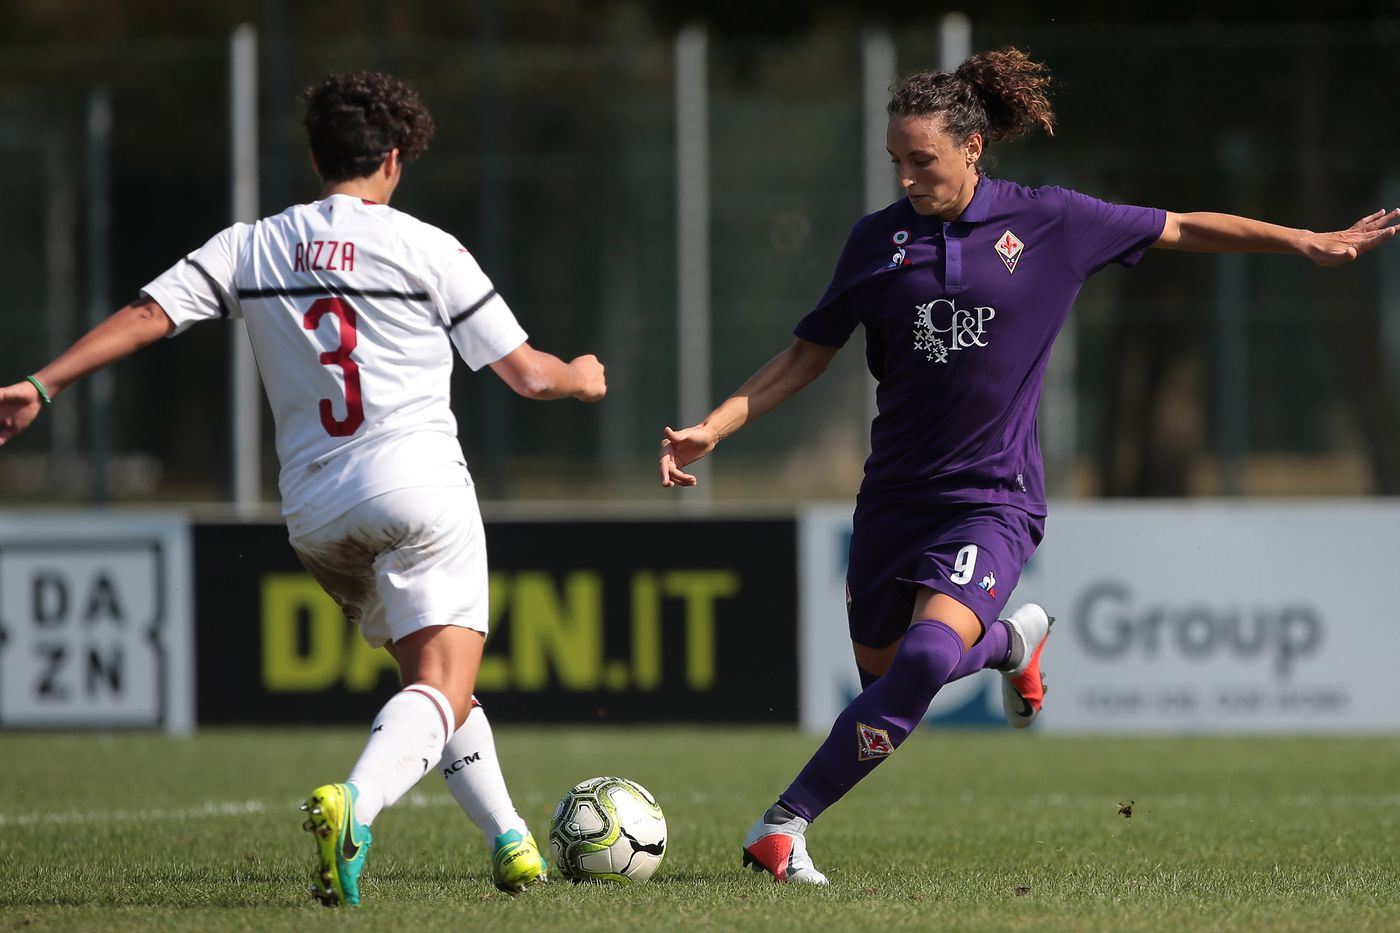 Anteprima: The AC Milan Women vs Fiorentina in the Coppa Italia Femminile -  The AC Milan Offside